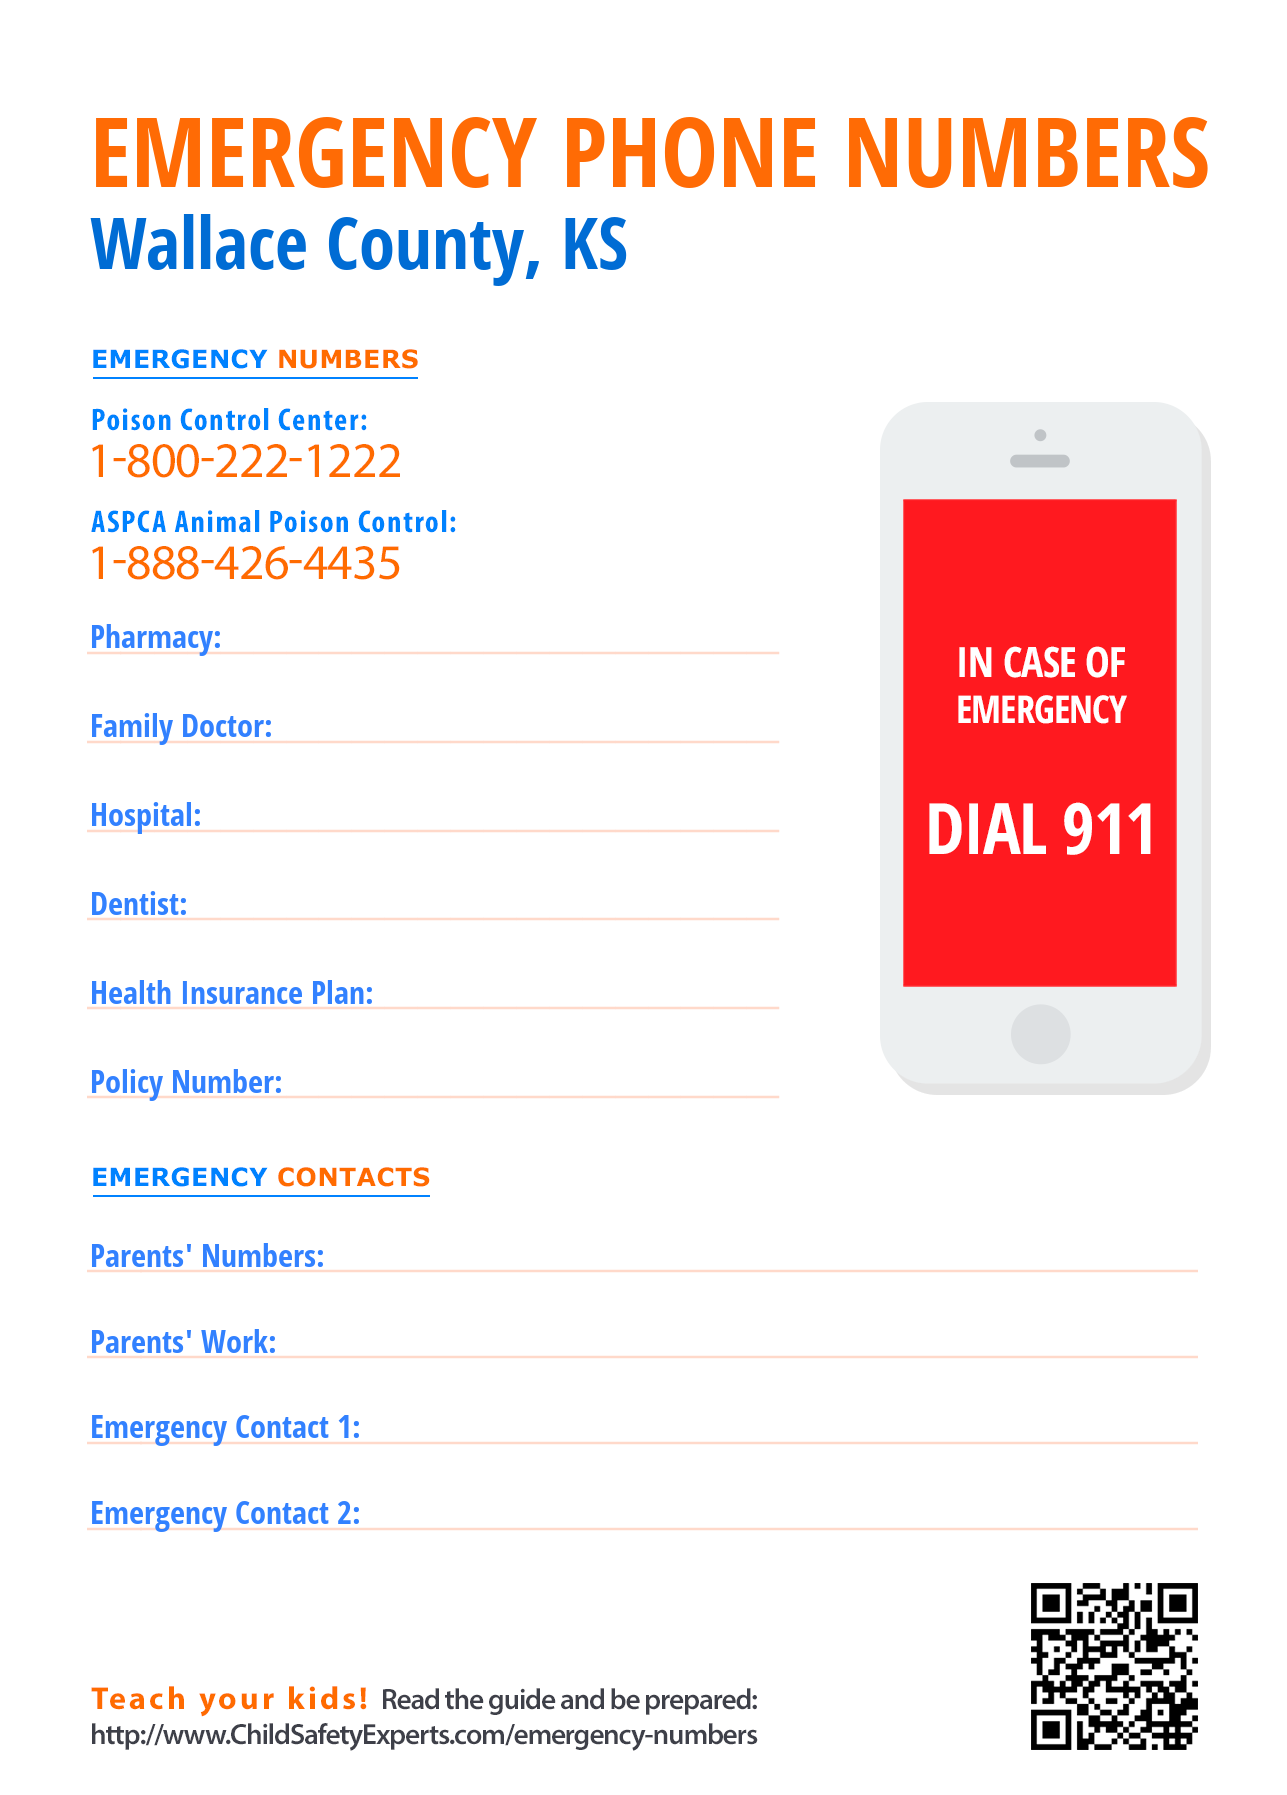 Important emergency phone numbers in Wallace County, Kansas